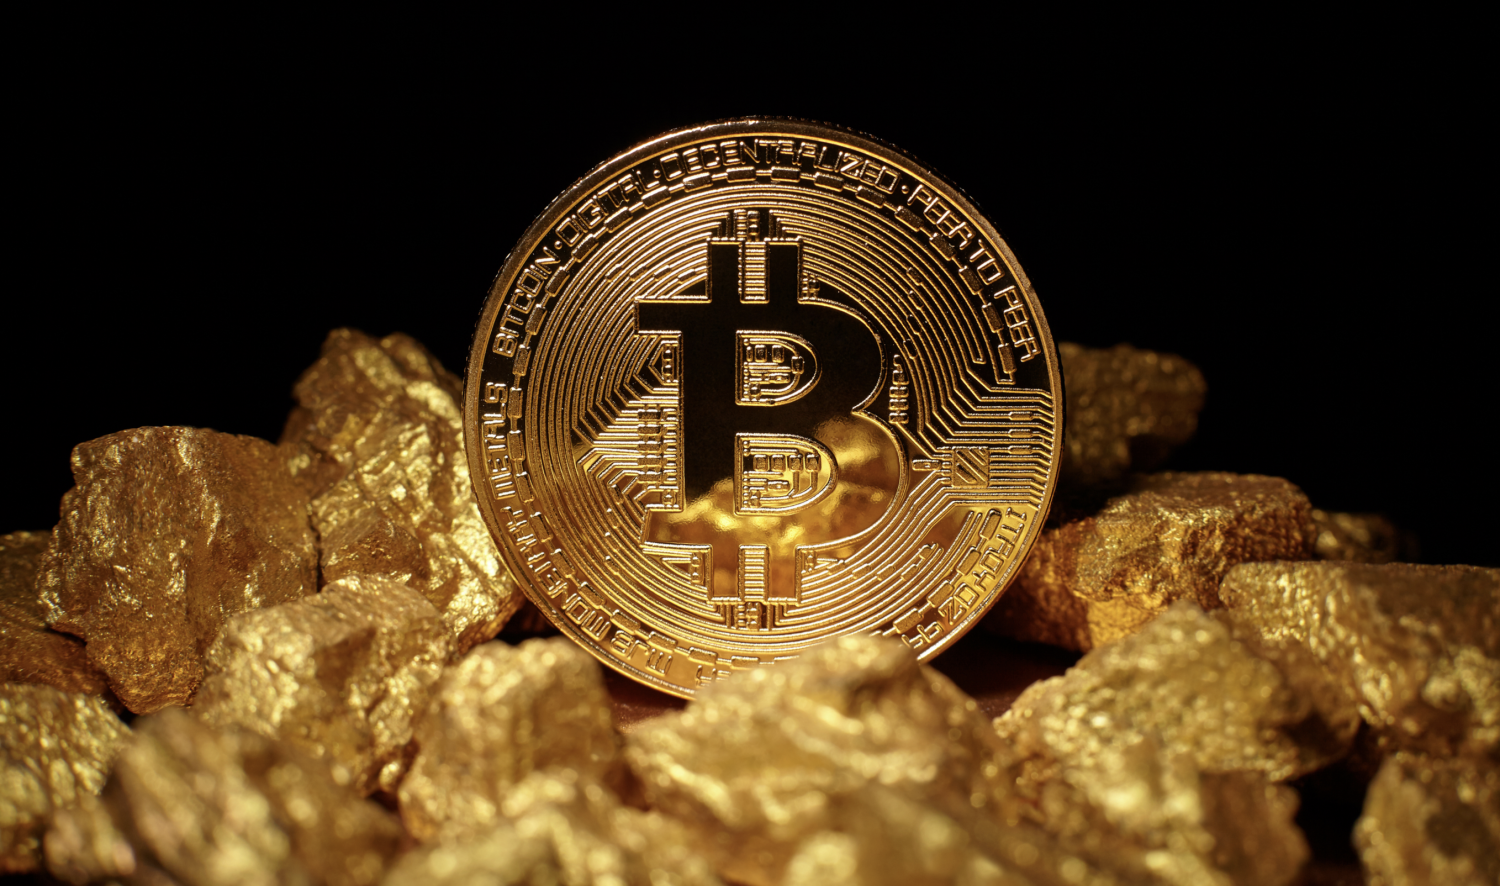 Bitcoin: Likely Headed To $50,000 And A Lot Higher After That